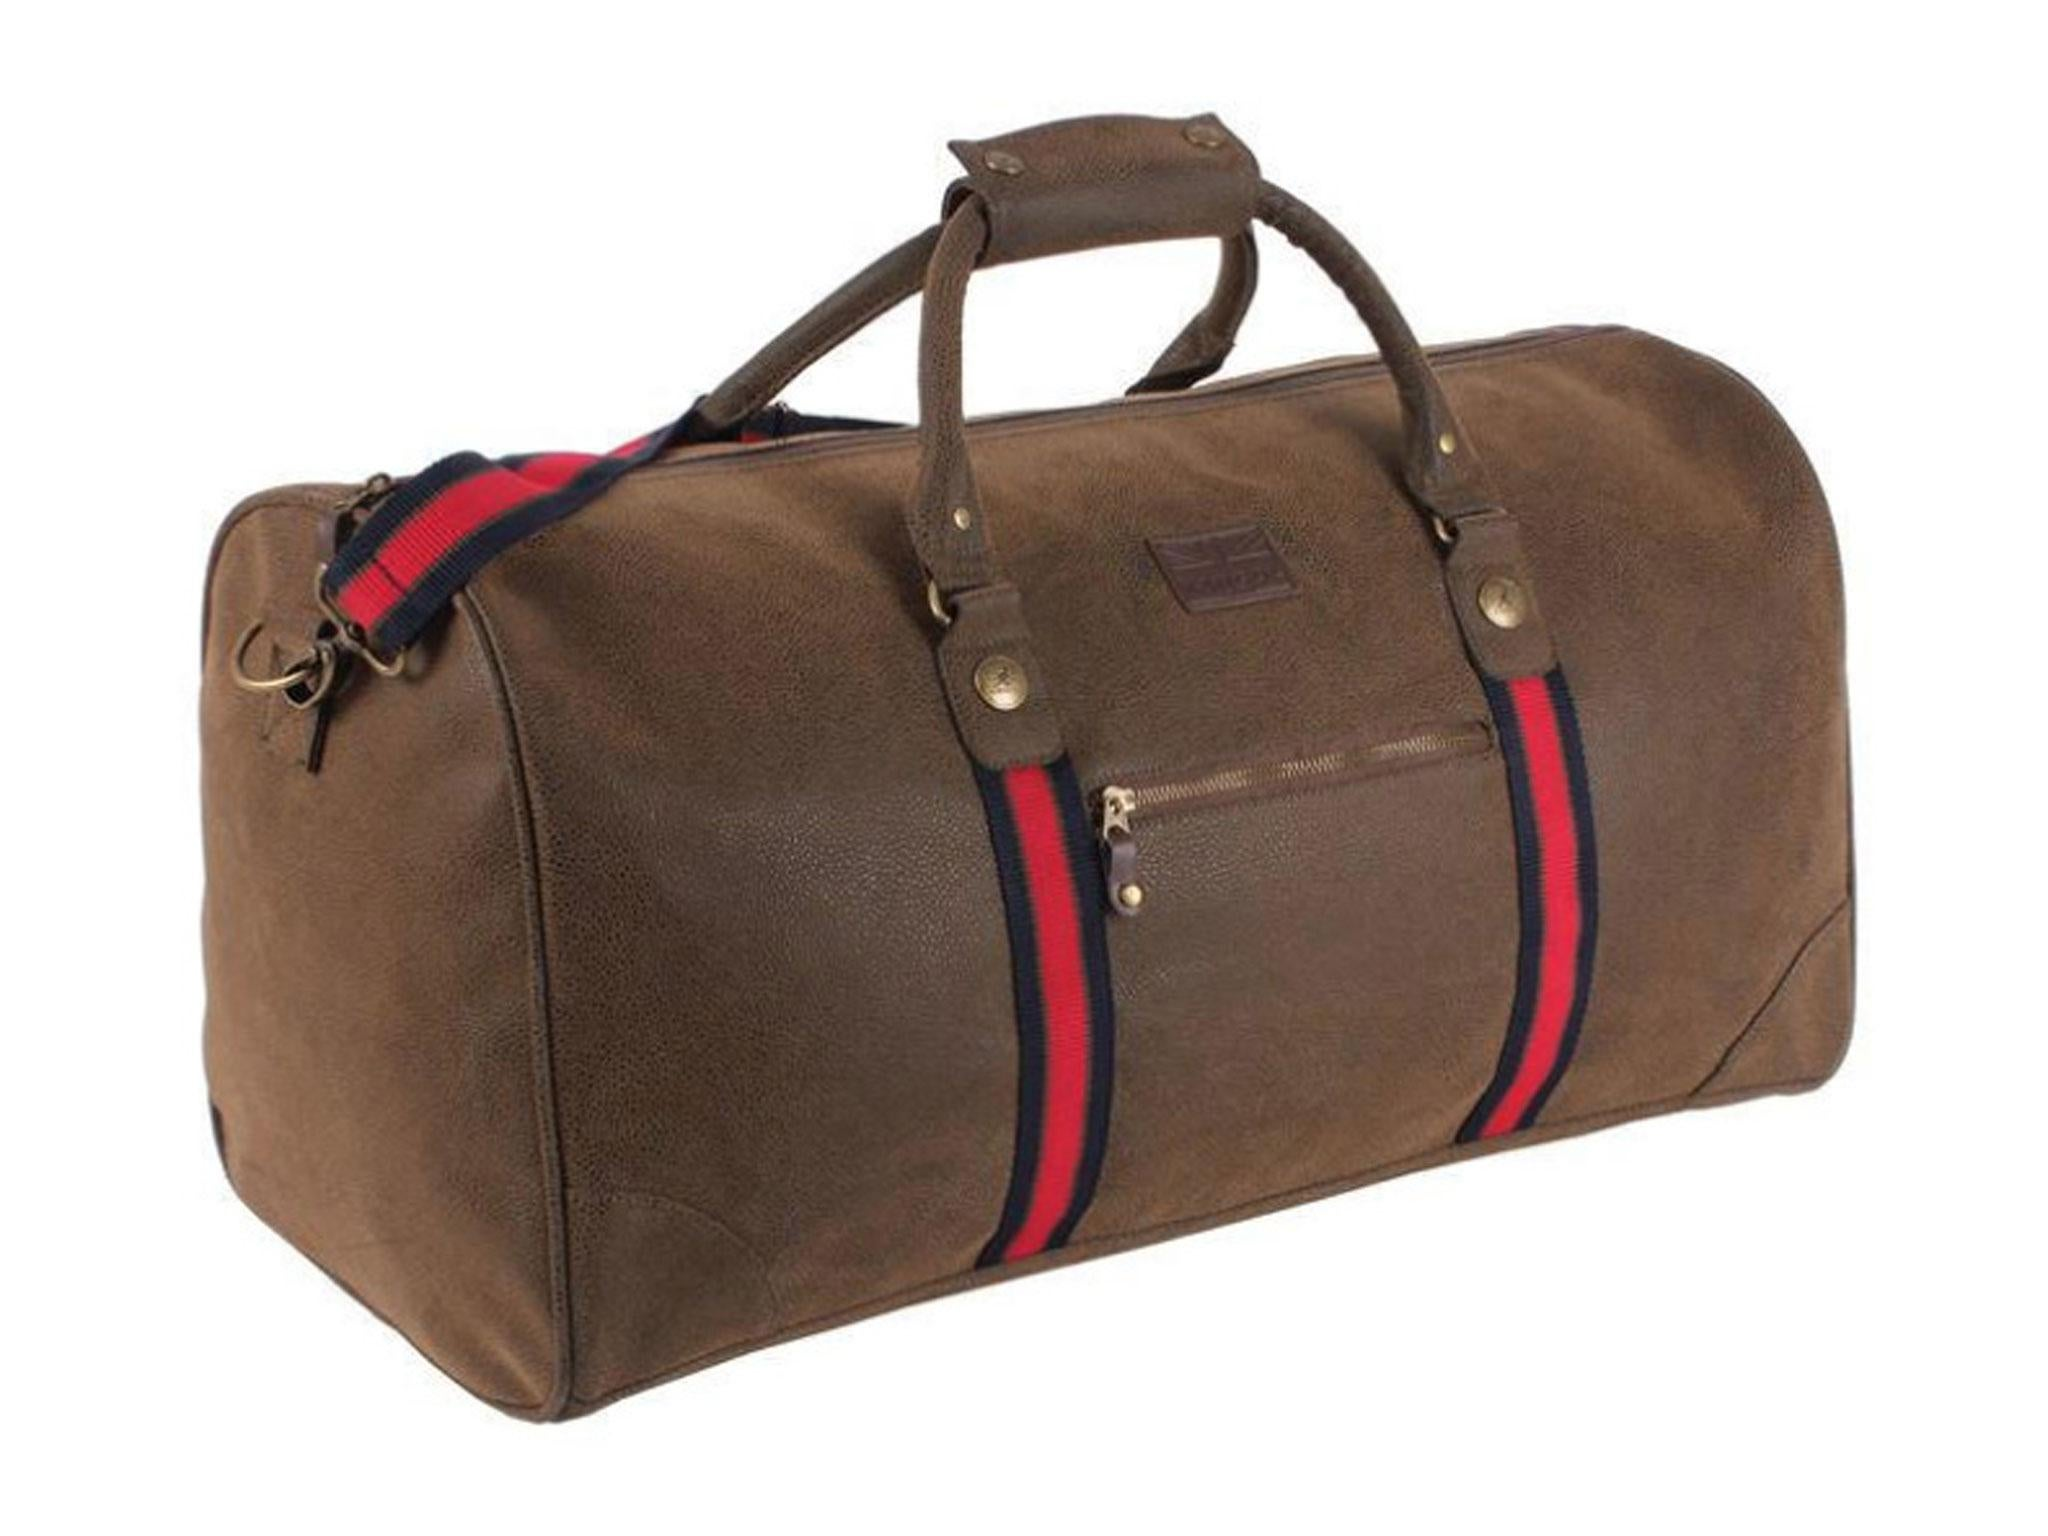 This Kangol holdall looks stylish if you re going to the gym via work. It s  much bigger than the Slazenger gym bag above. It has one small internal  zipped ... 2e4339b6d6